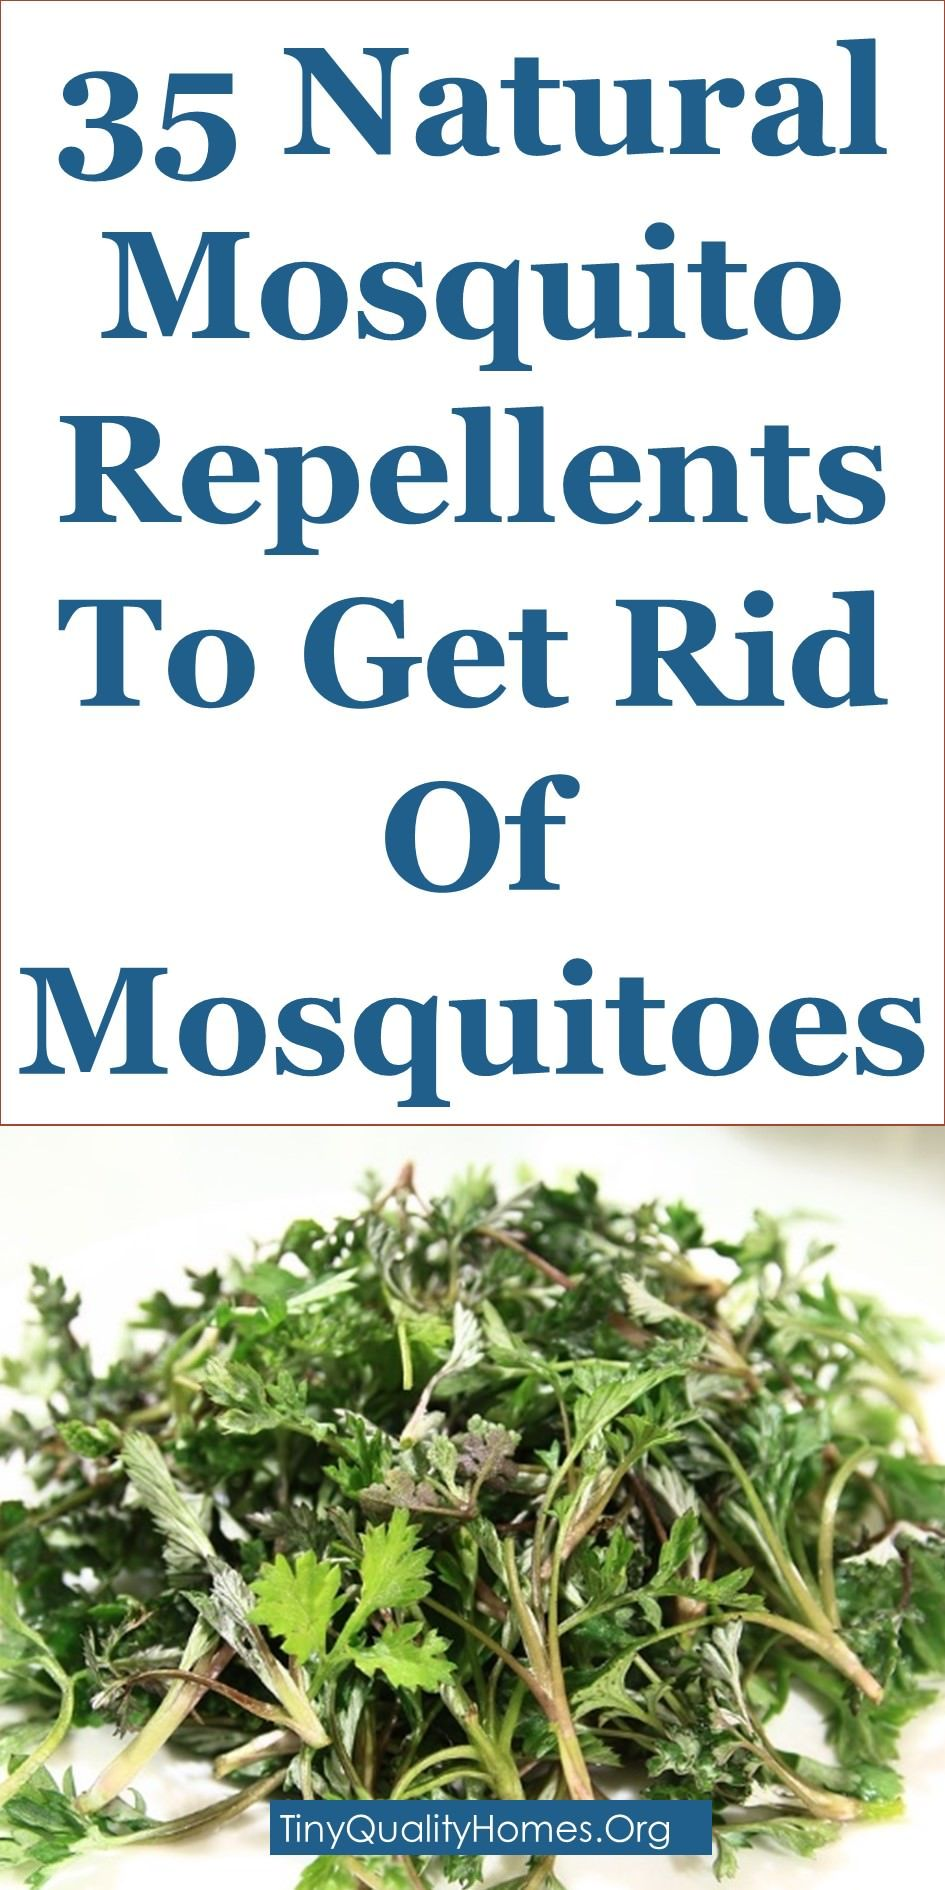 35 Natural Mosquito Repellents To Get Rid Of Mosquitoes Natural